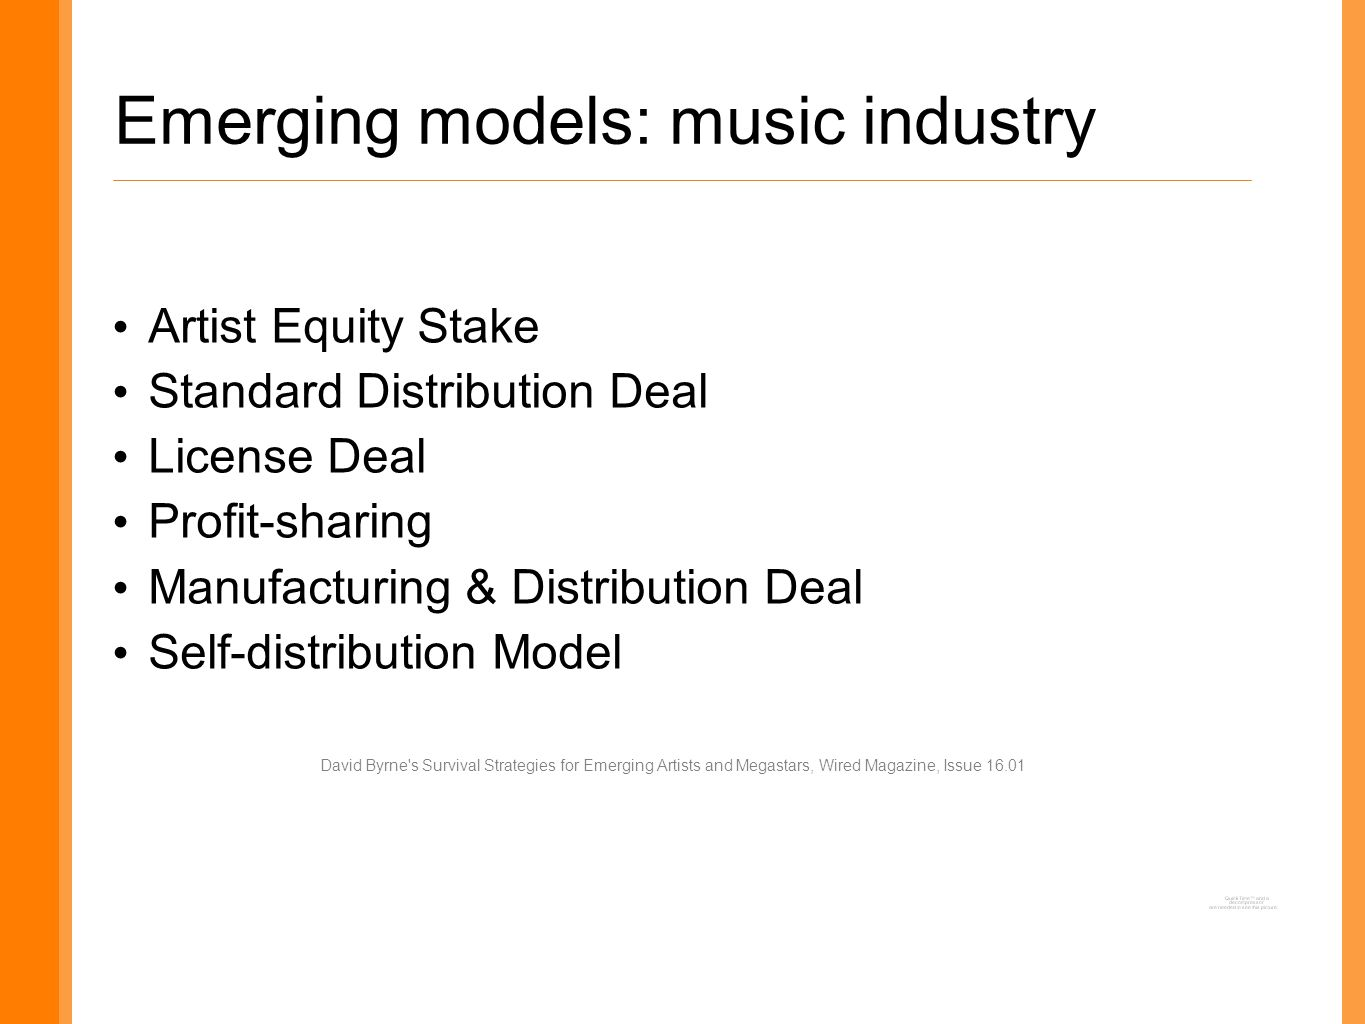 Emerging models: music industry Artist Equity Stake Standard Distribution Deal License Deal Profit-sharing Manufacturing & Distribution Deal Self-distribution Model David Byrne s Survival Strategies for Emerging Artists and Megastars, Wired Magazine, Issue 16.01